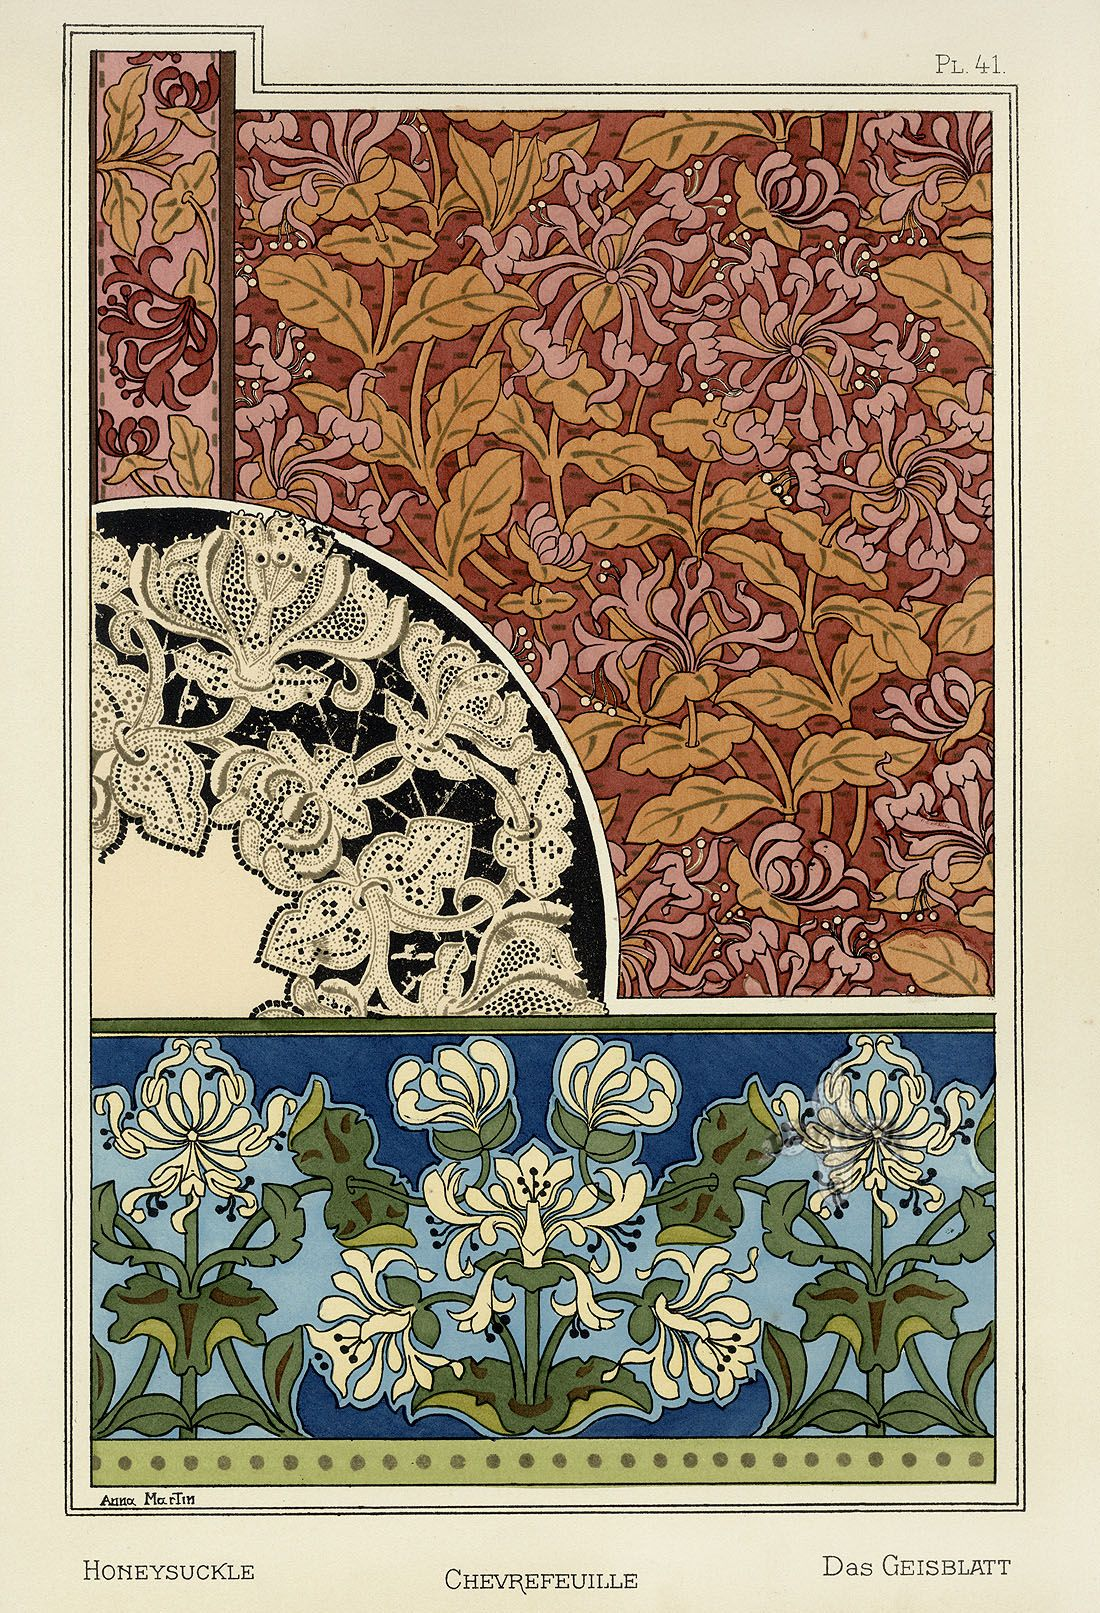 Pochoir Frise Arabesque Eugene Grasset Pochoir Prints 1896 Honeysuckle Art Deco In 2019